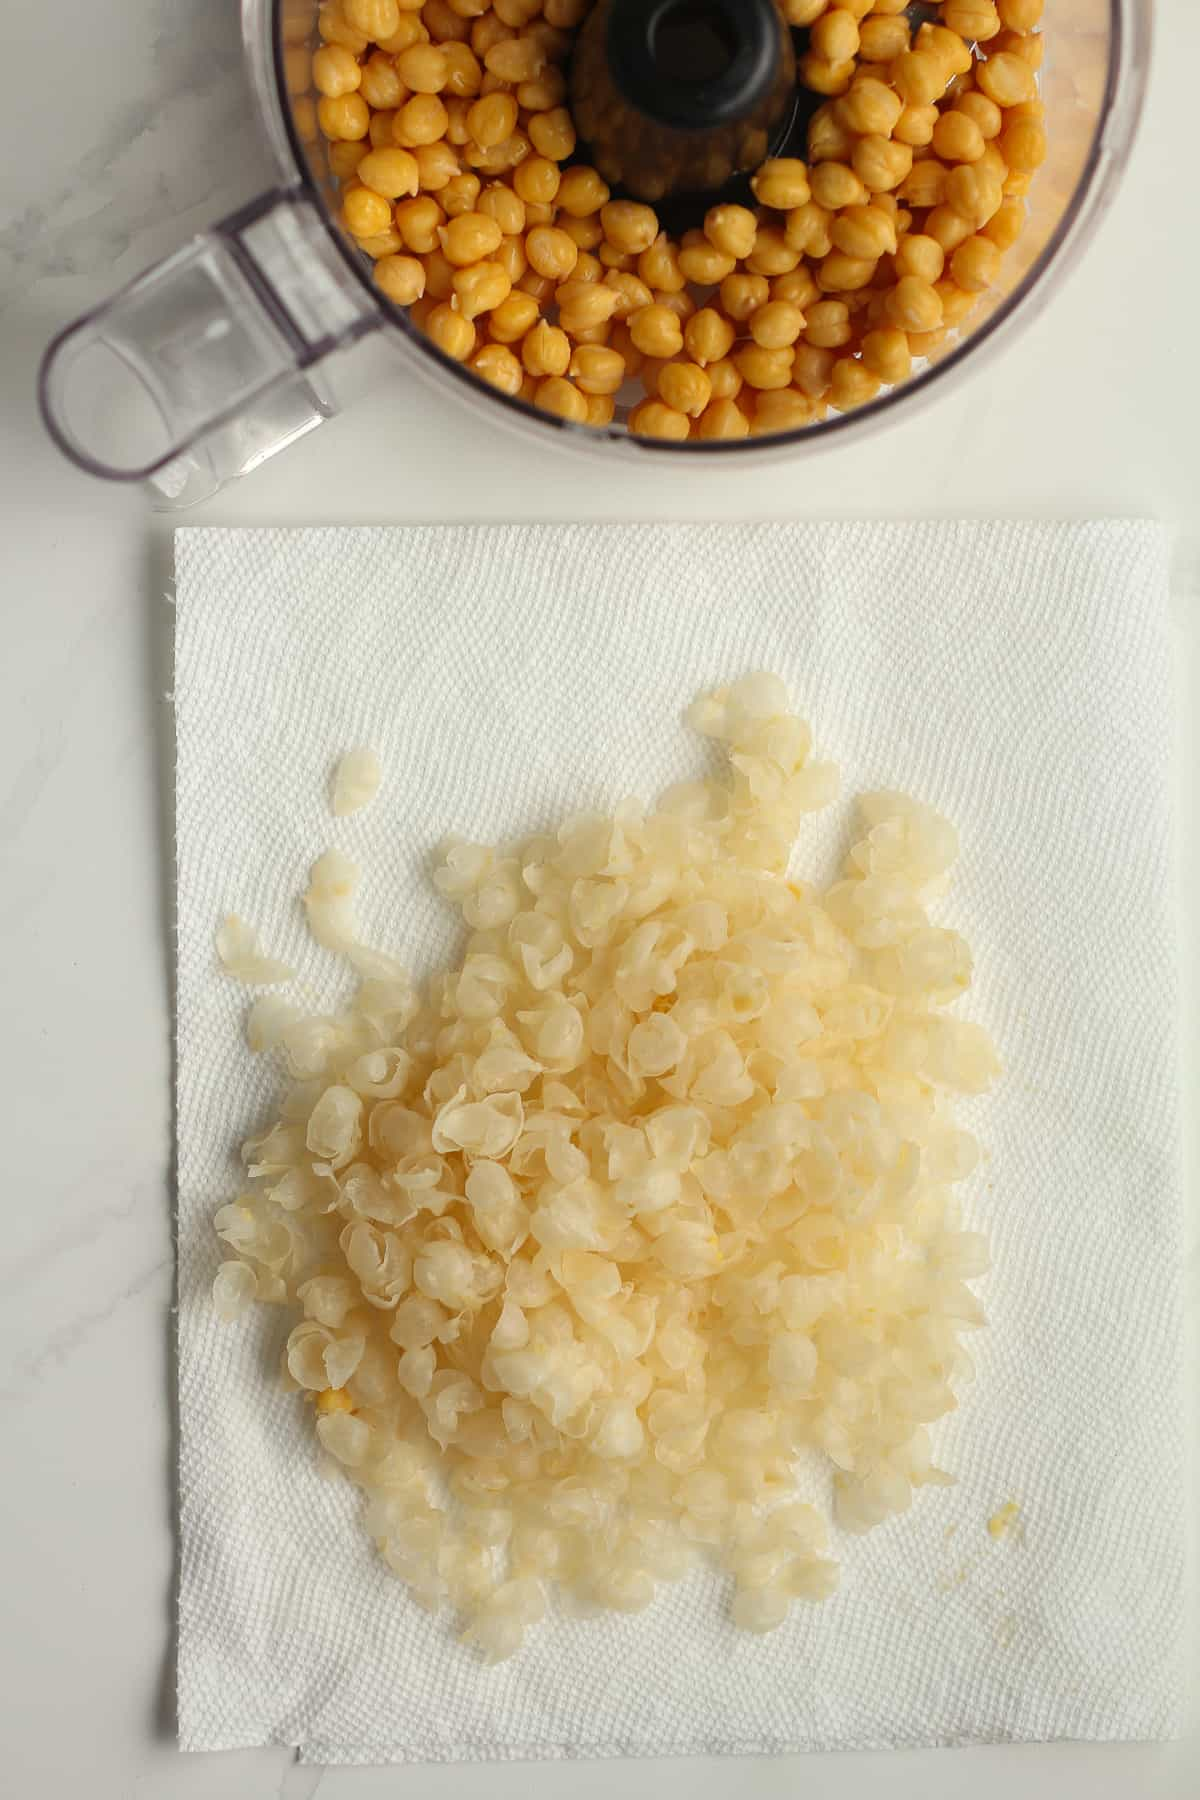 Overhead shot of some chickpea skins next to a food processor of chickpeas.